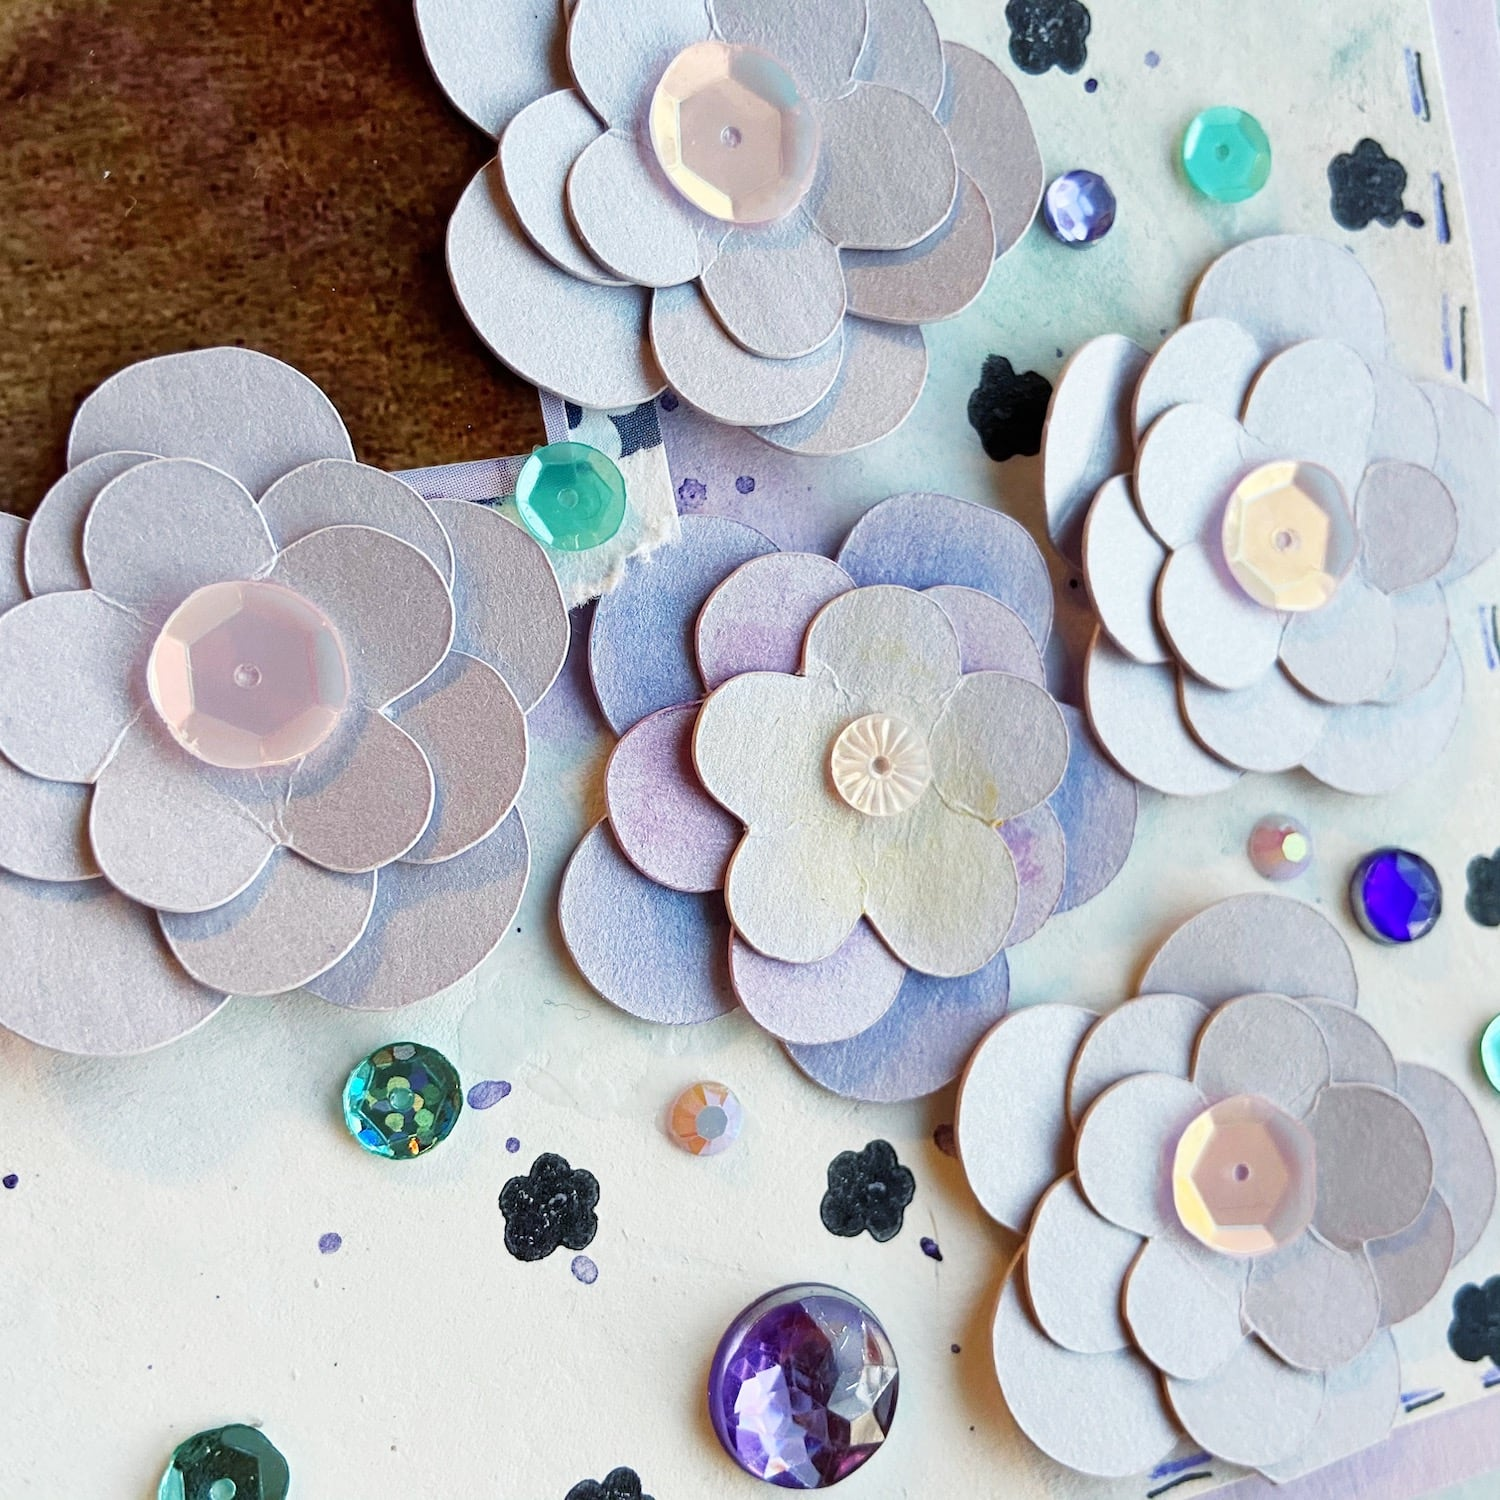 kunzite die cut paper flowers with sequin centers